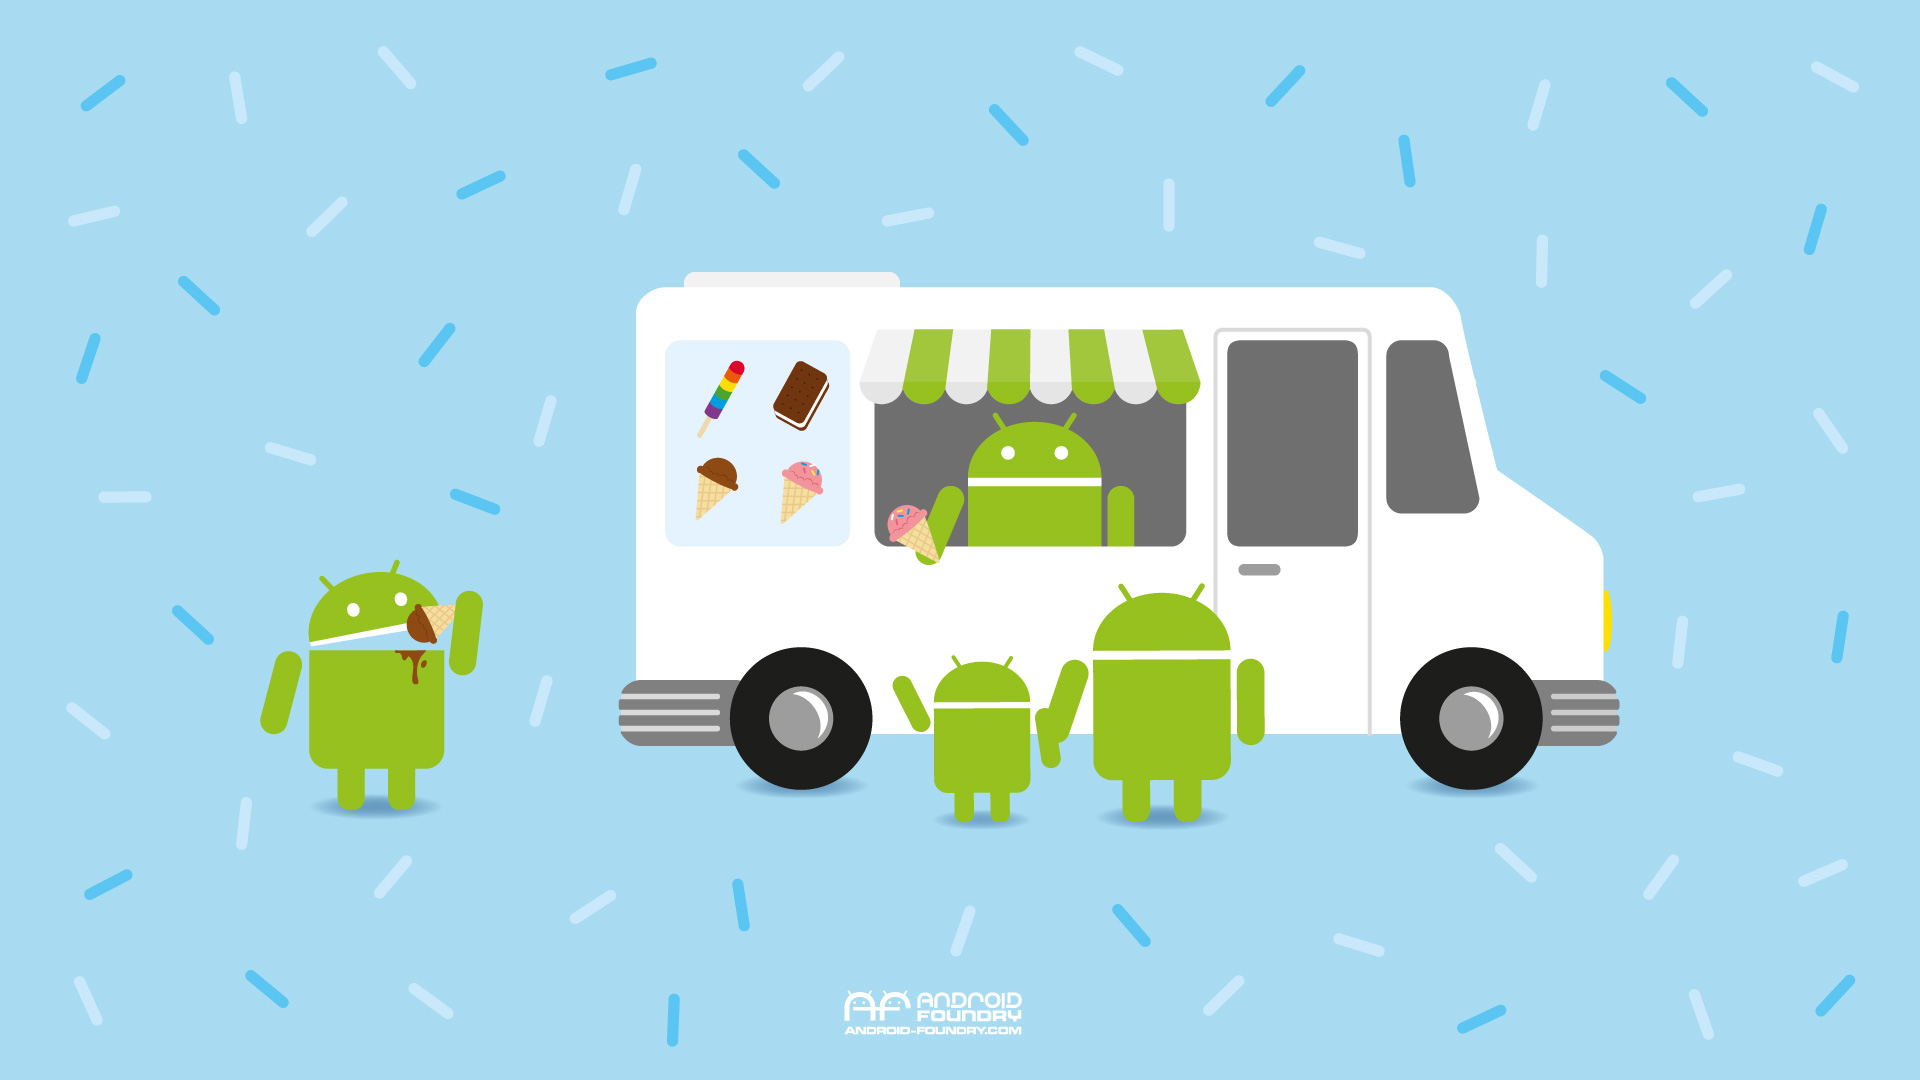 Android_National_Ice_Cream_Month_wallpaper